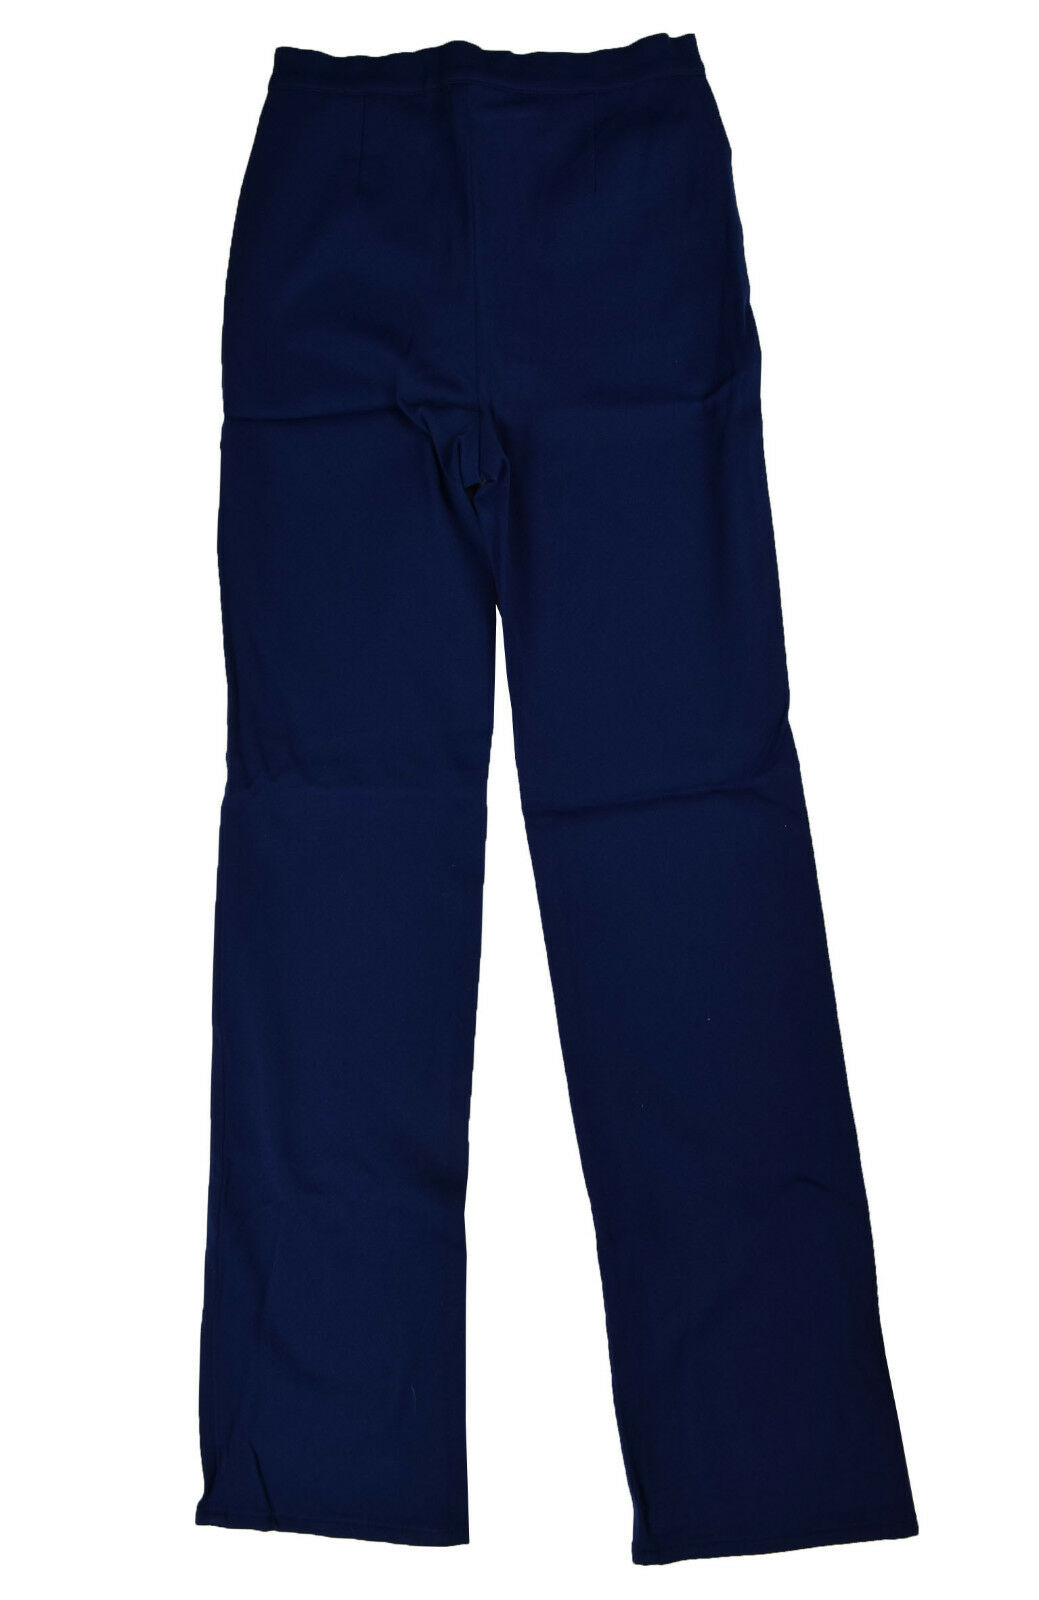 Versace Jeans Couture Women's Navy bluee Pants Size 26 40